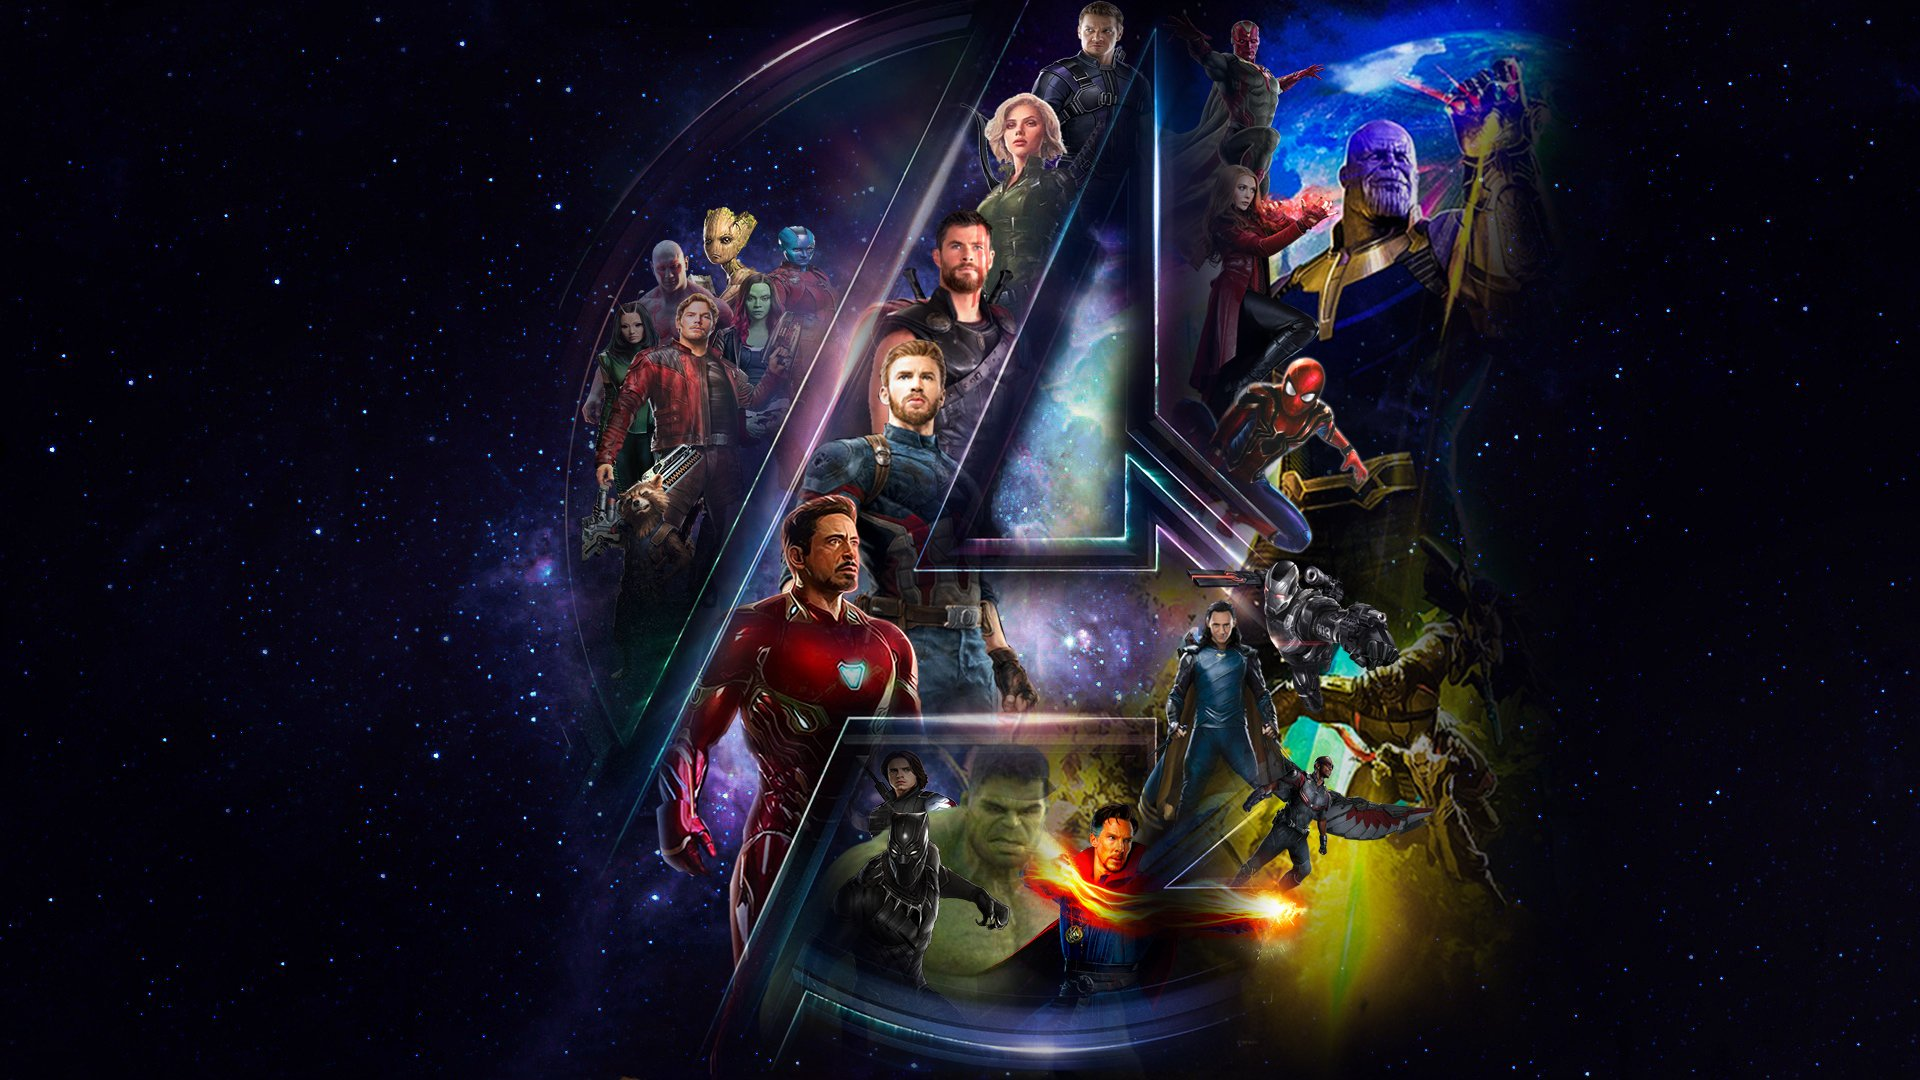 Hd Wallpaper Background Image Id X Movie Avengers Infinity War